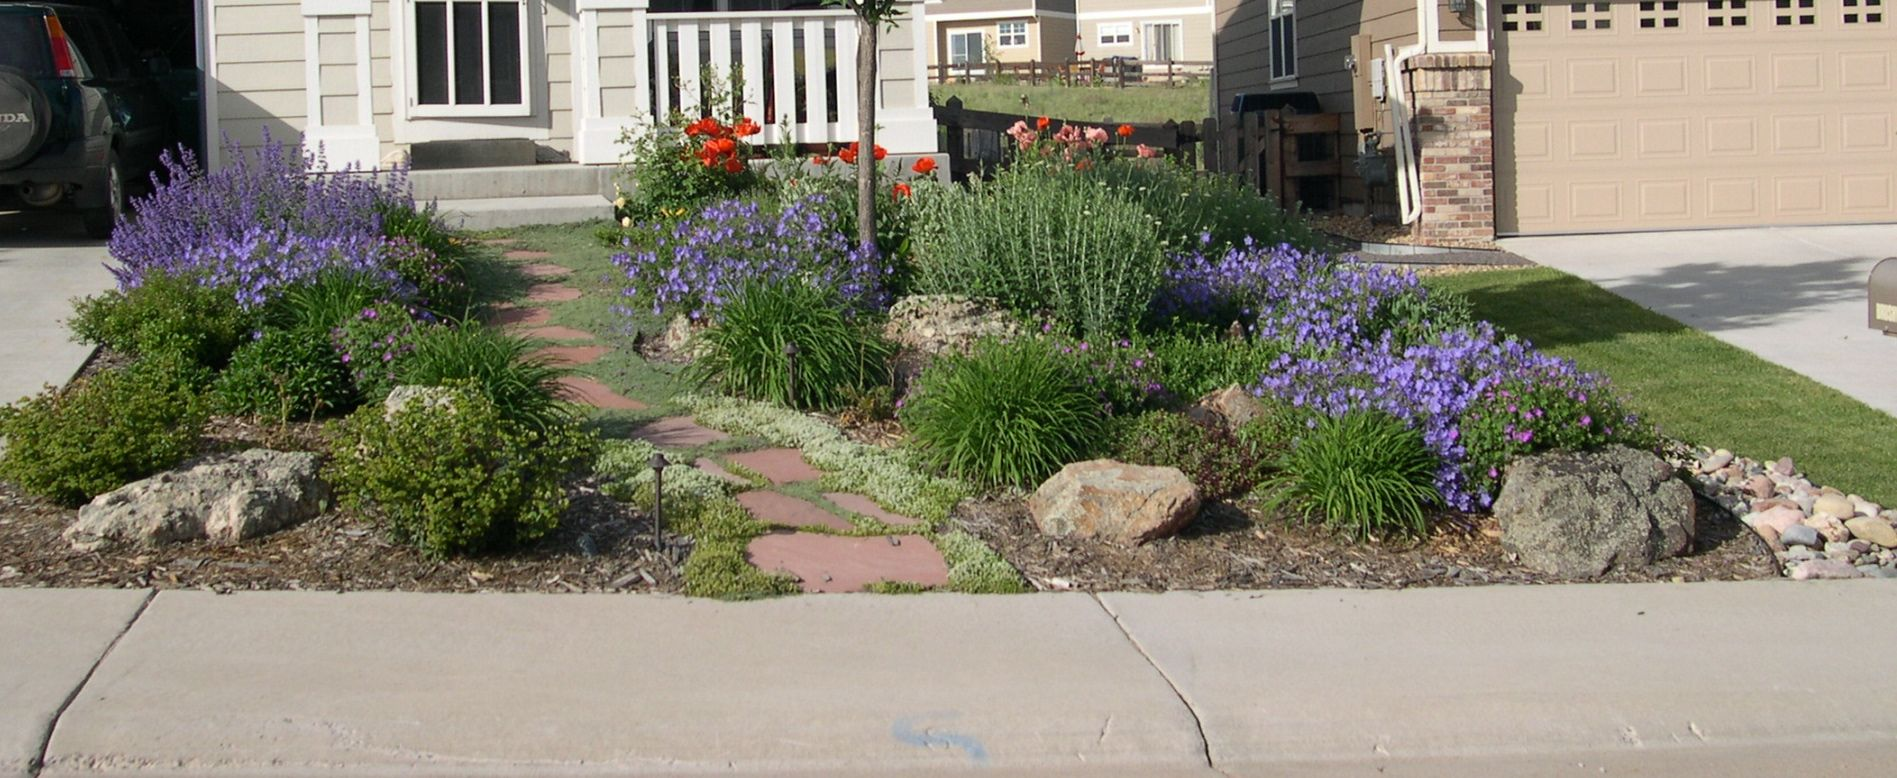 Need a no/low water front yard solution | Yard landscaping, Front ...